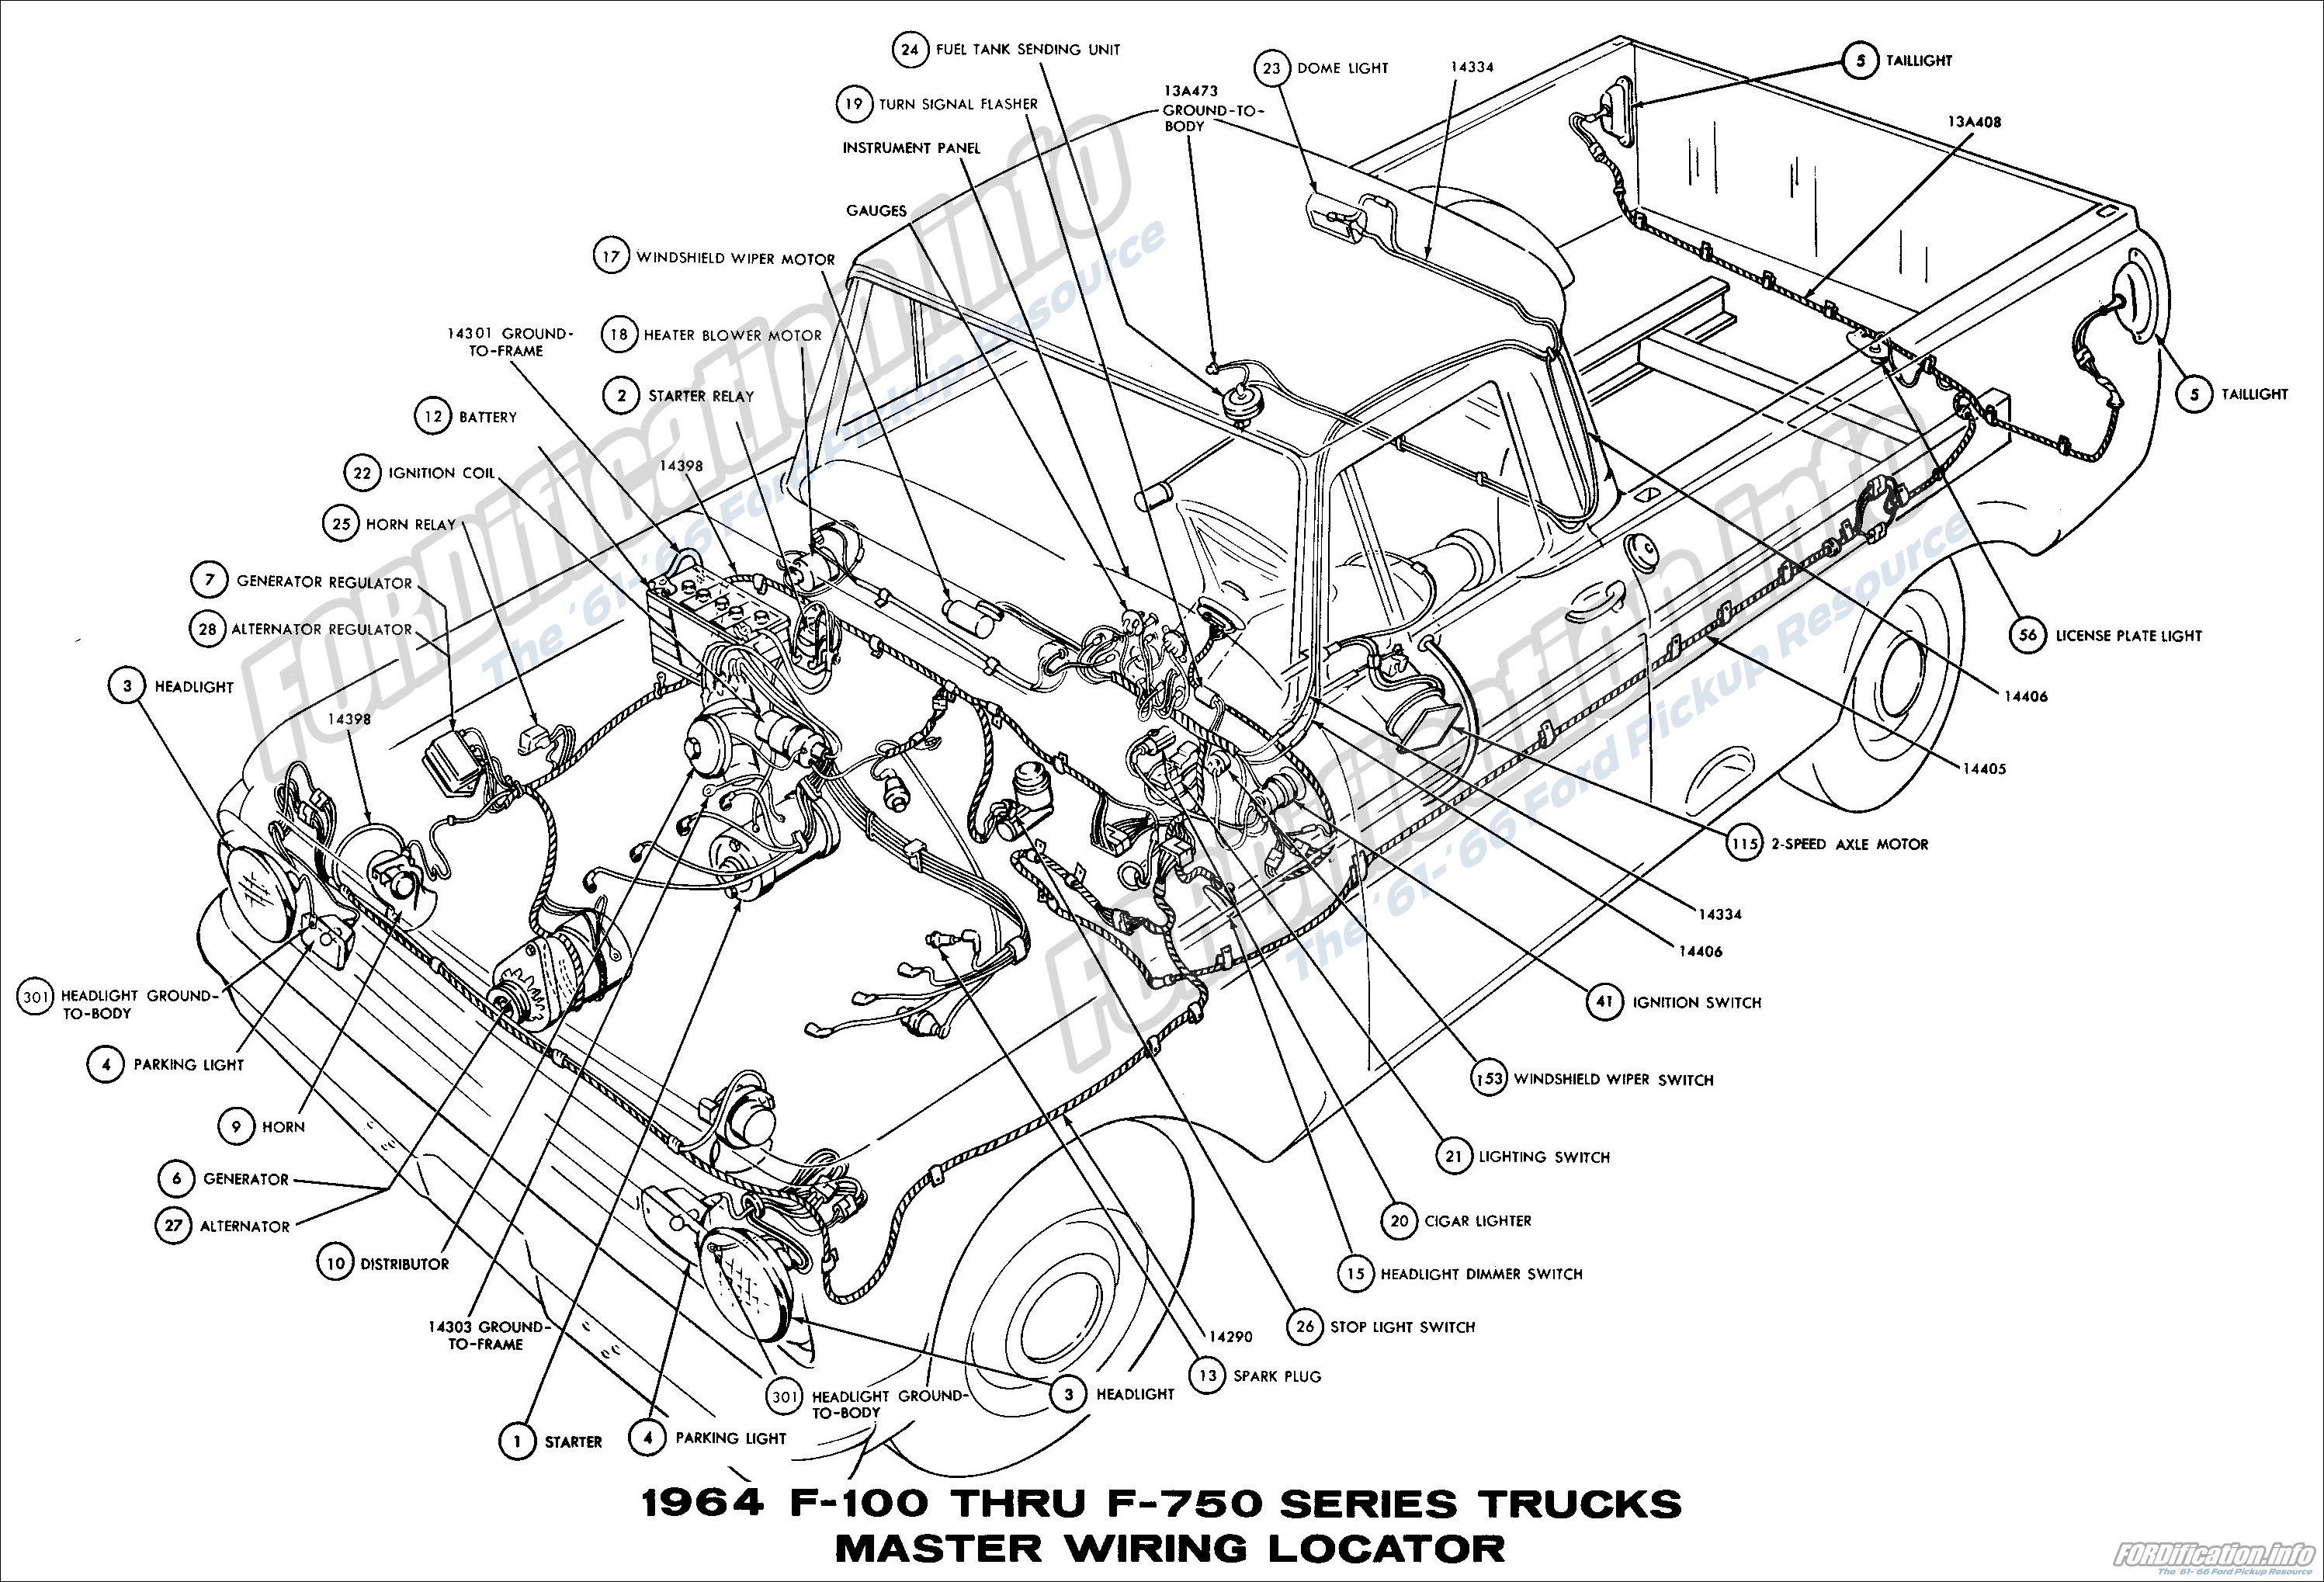 1964 ford truck wiring diagrams fordification info the 61 66 rh fordification info 1964 ford f100 dash wiring diagram 1964 ford f100 dash wiring diagram